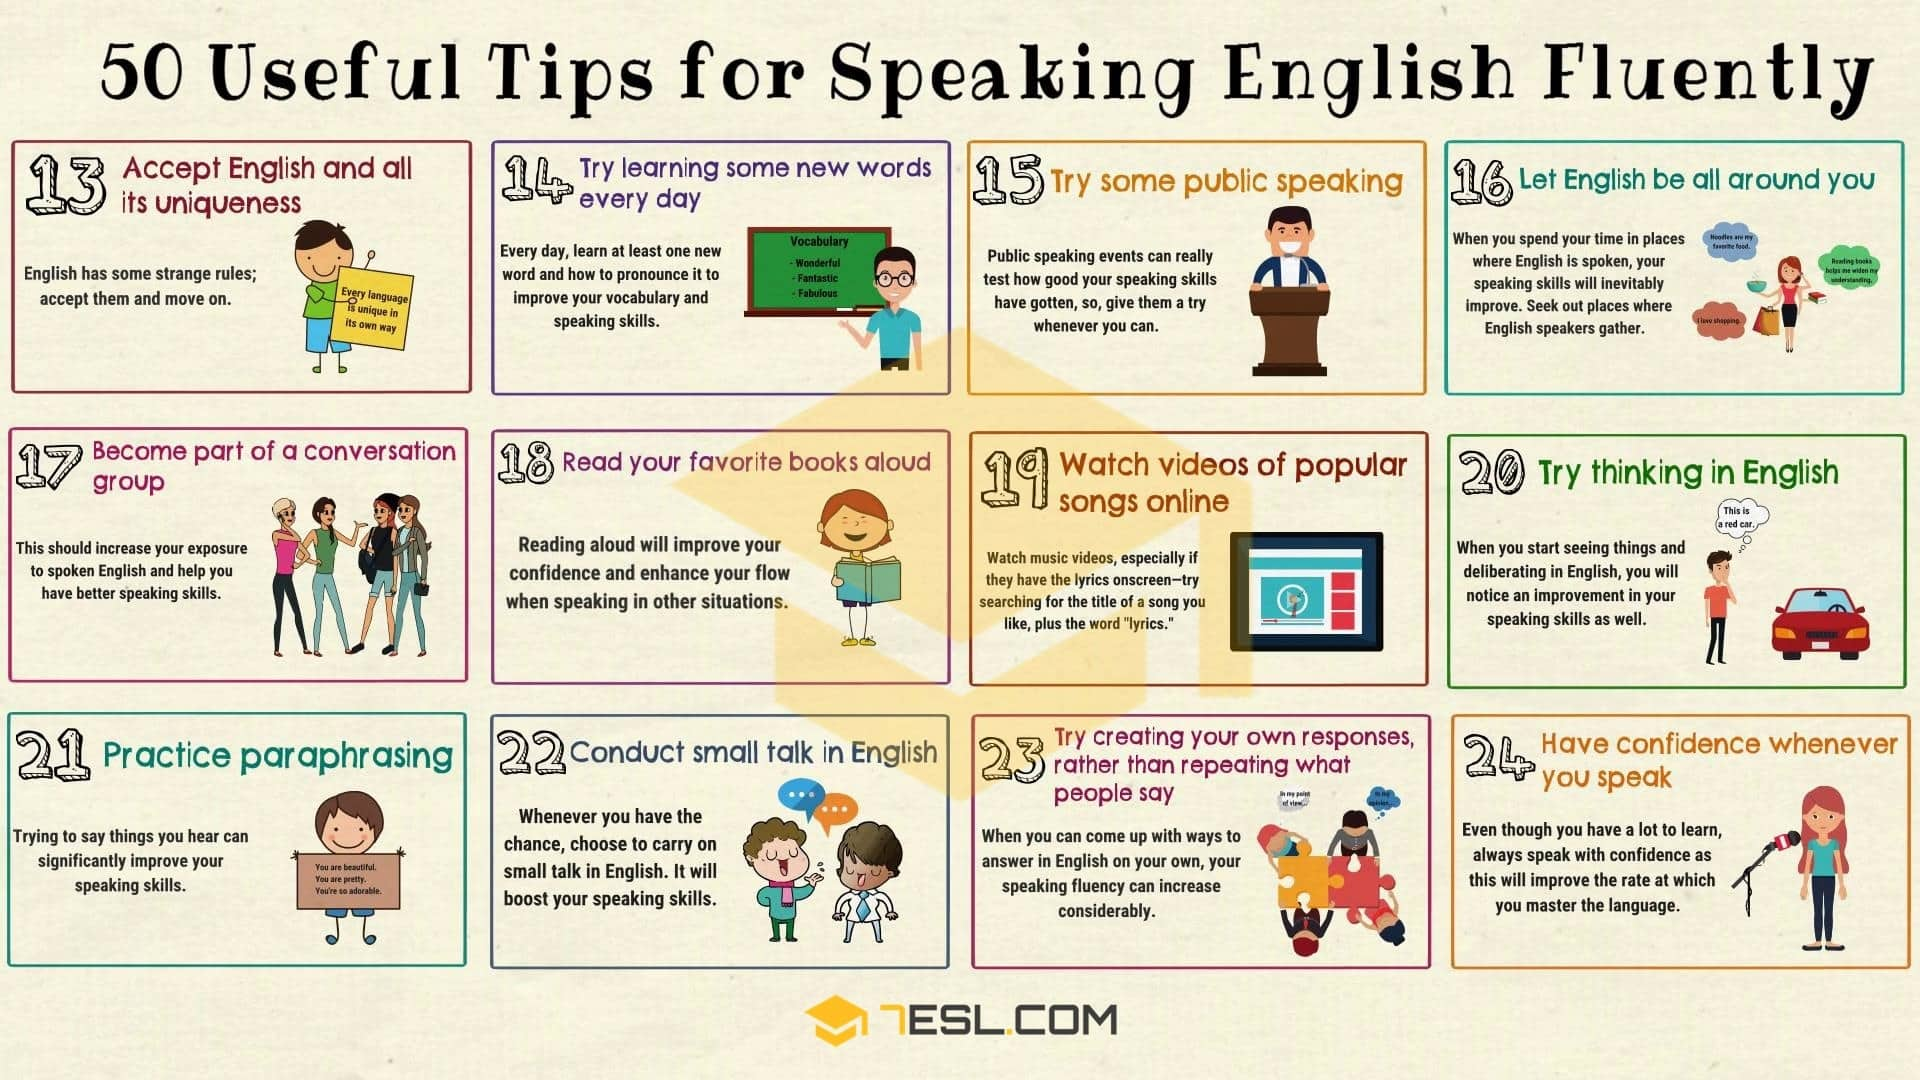 How to Speak English: Useful English Speaking Tips | Image 2